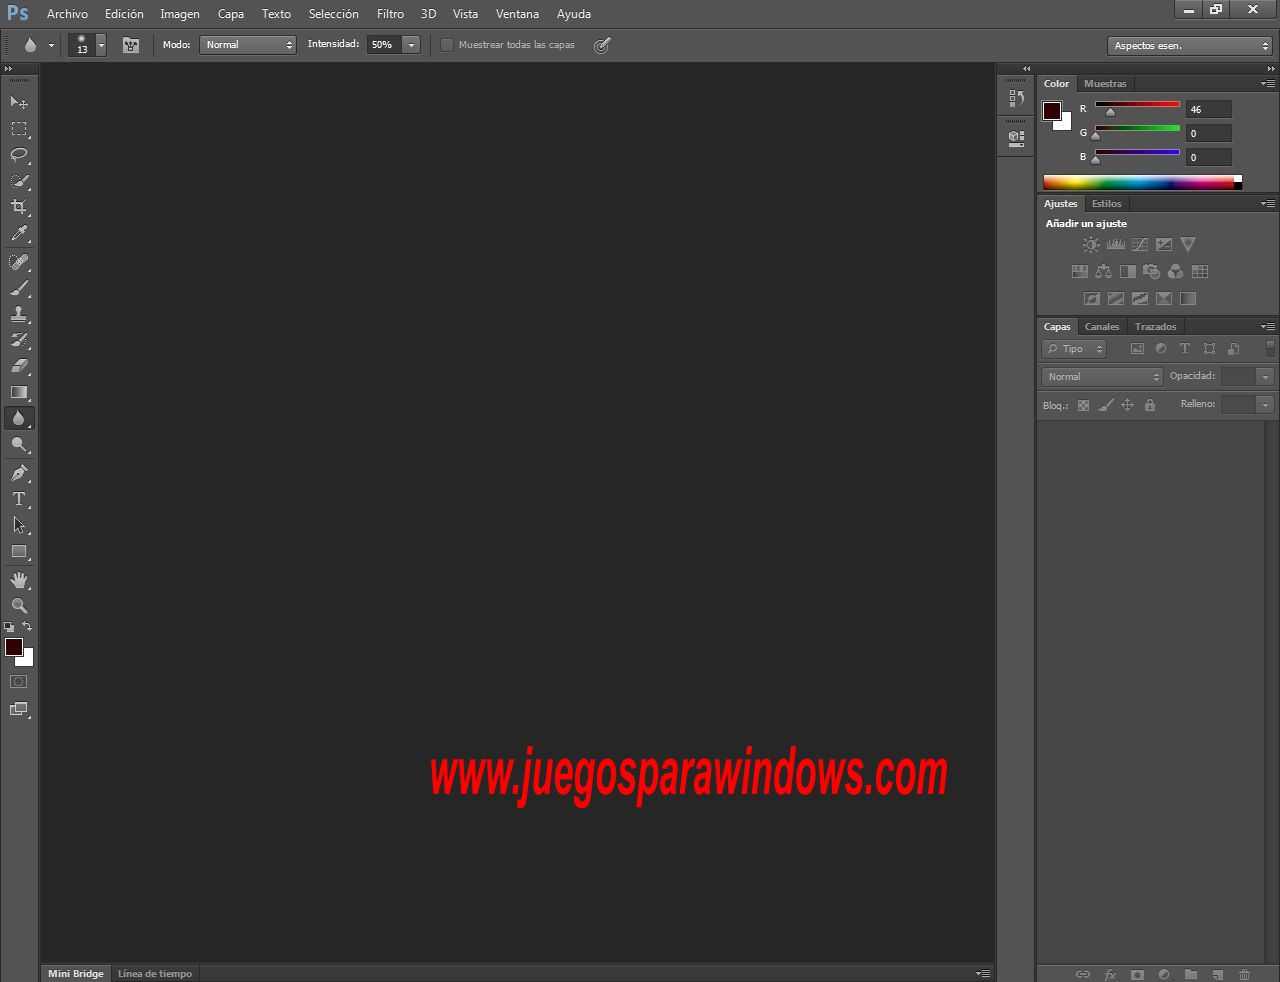 adobe photoshop cs6 extended español pc windows imagenes